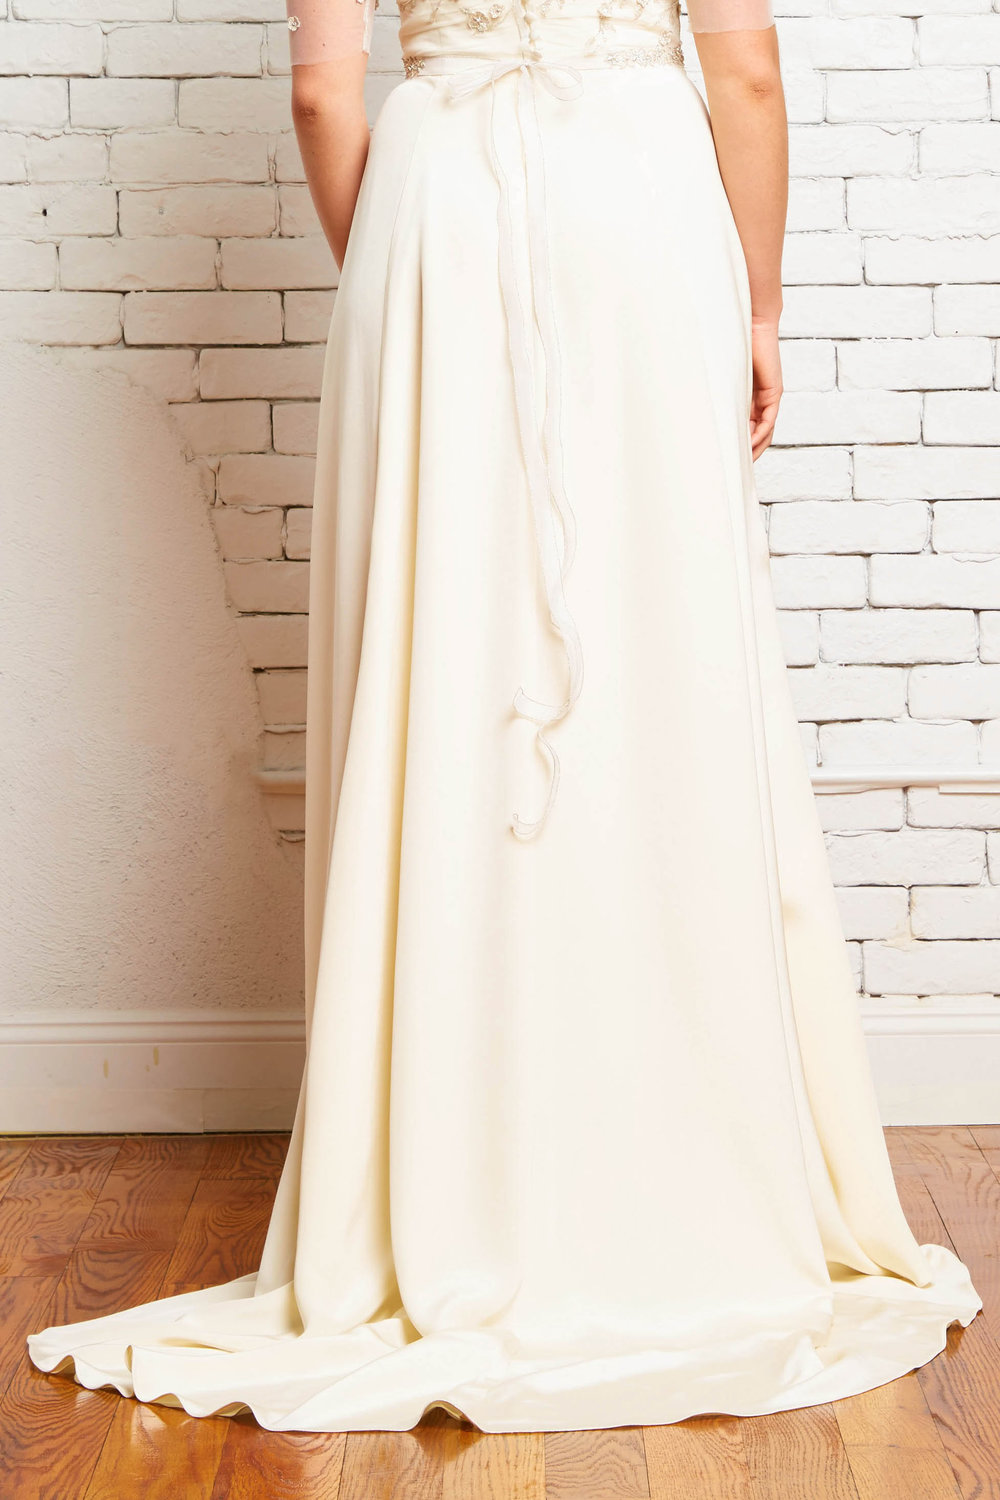 5D Brynn Skirt-Back-Rebecca Schoneveld-Skirt_Wedding_Separates_Boho_Train.jpg